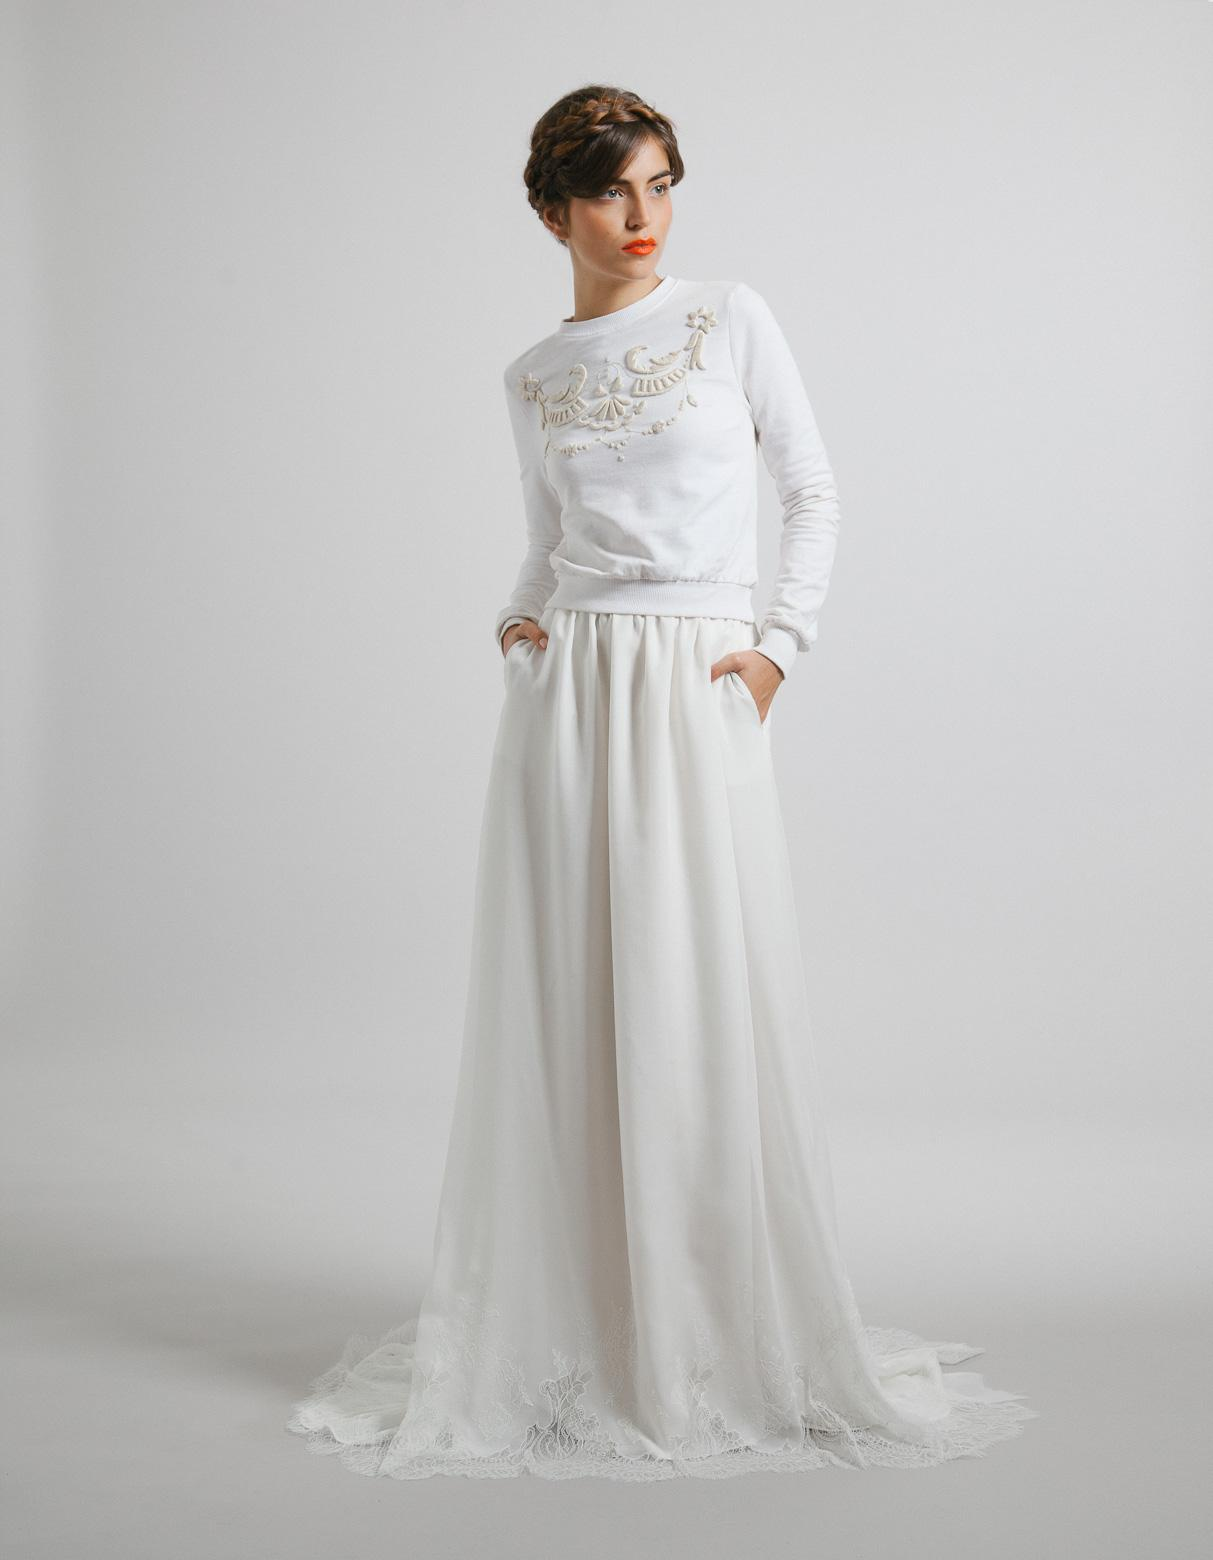 Robe hiver mariage for Robes pour mariage de famille